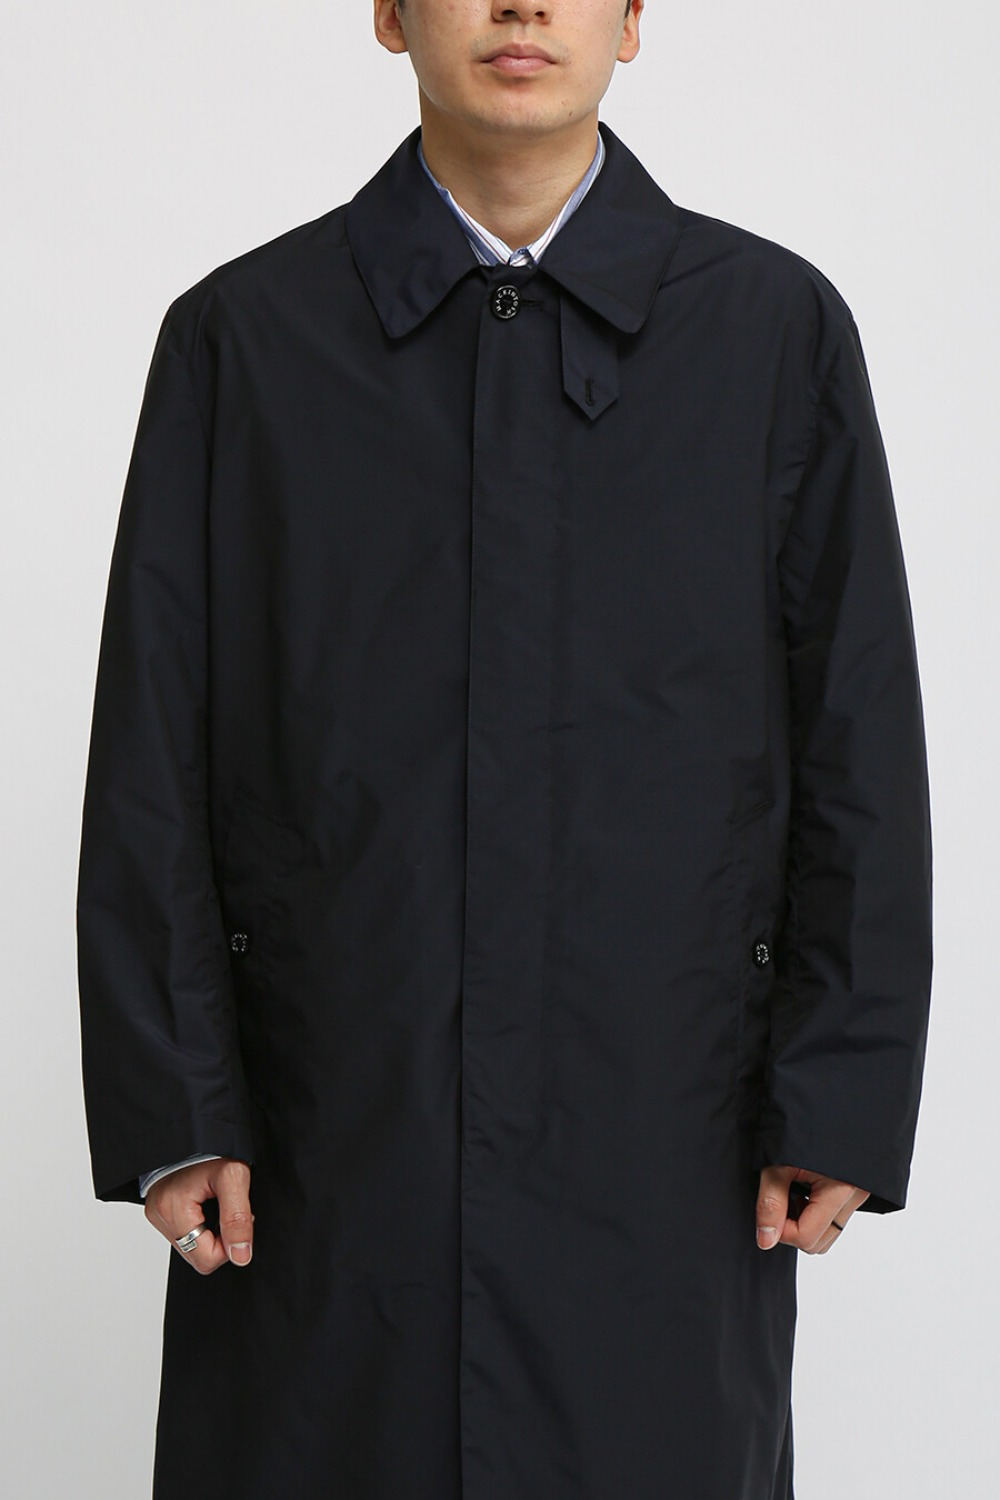 DUNCAN GM-1051B COAT NAVY